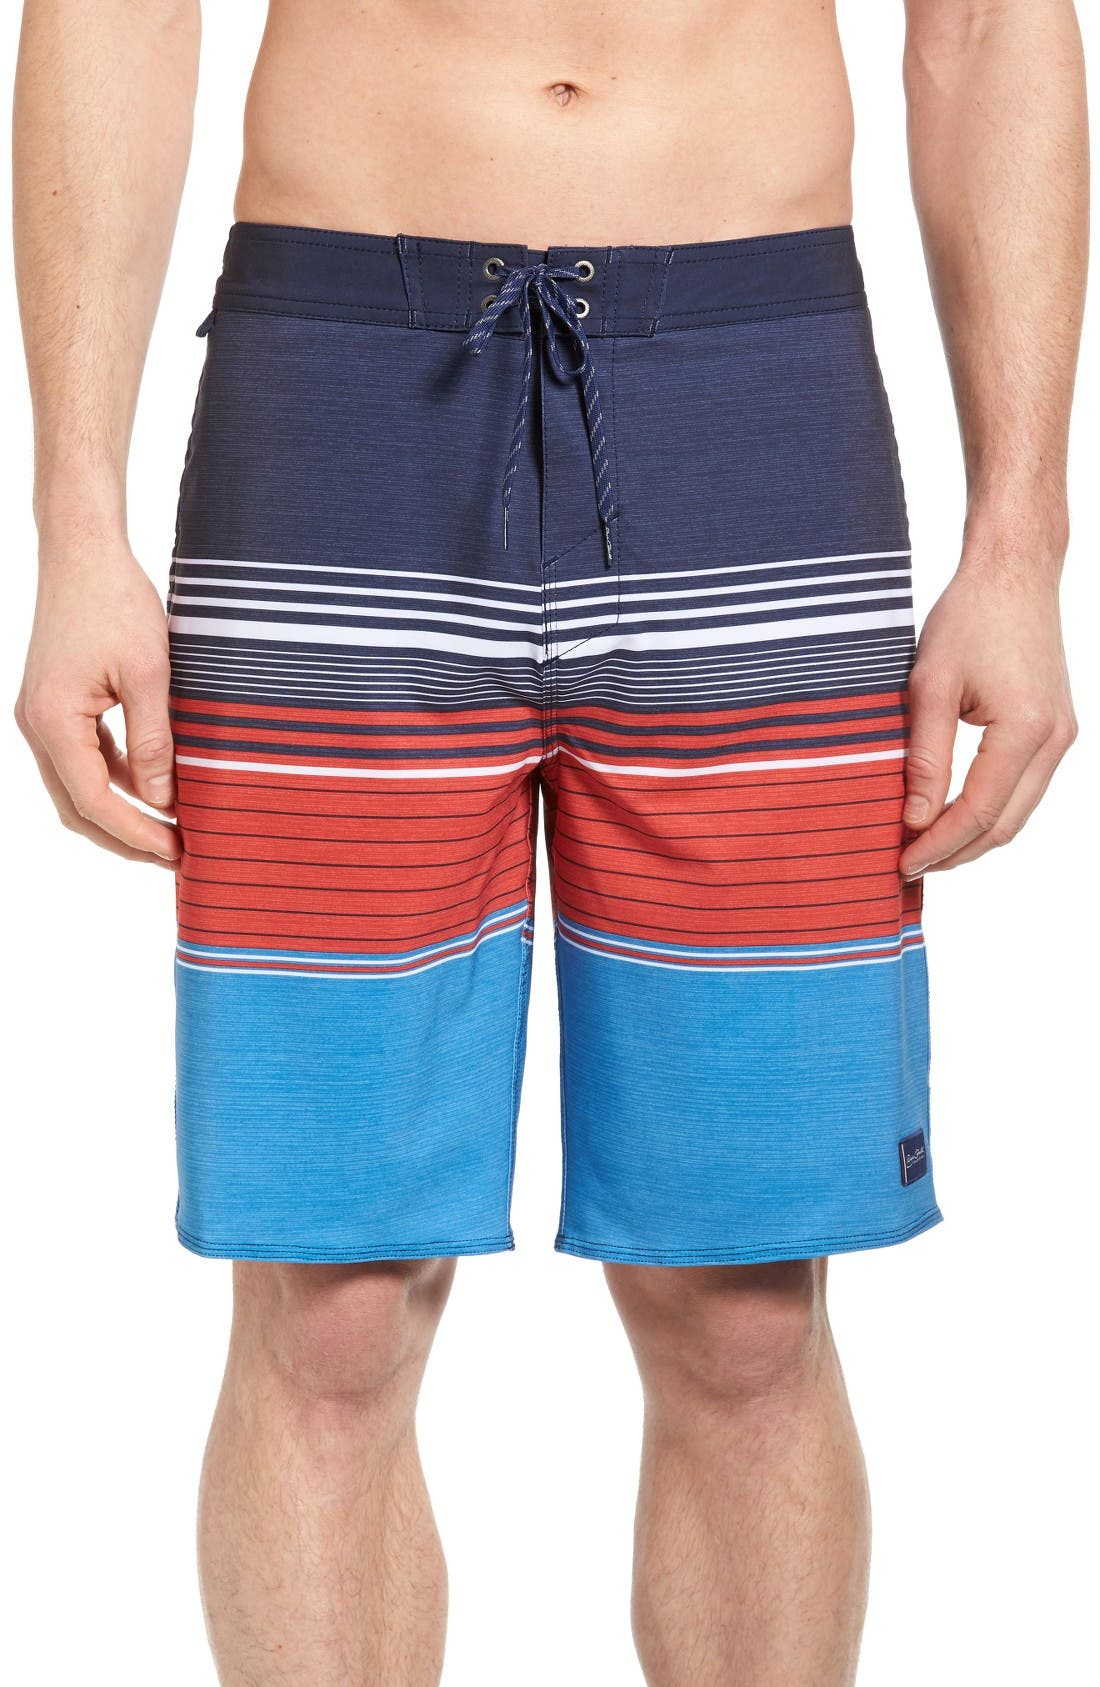 Jack O'Neill Frontiers Stretch Board Shorts